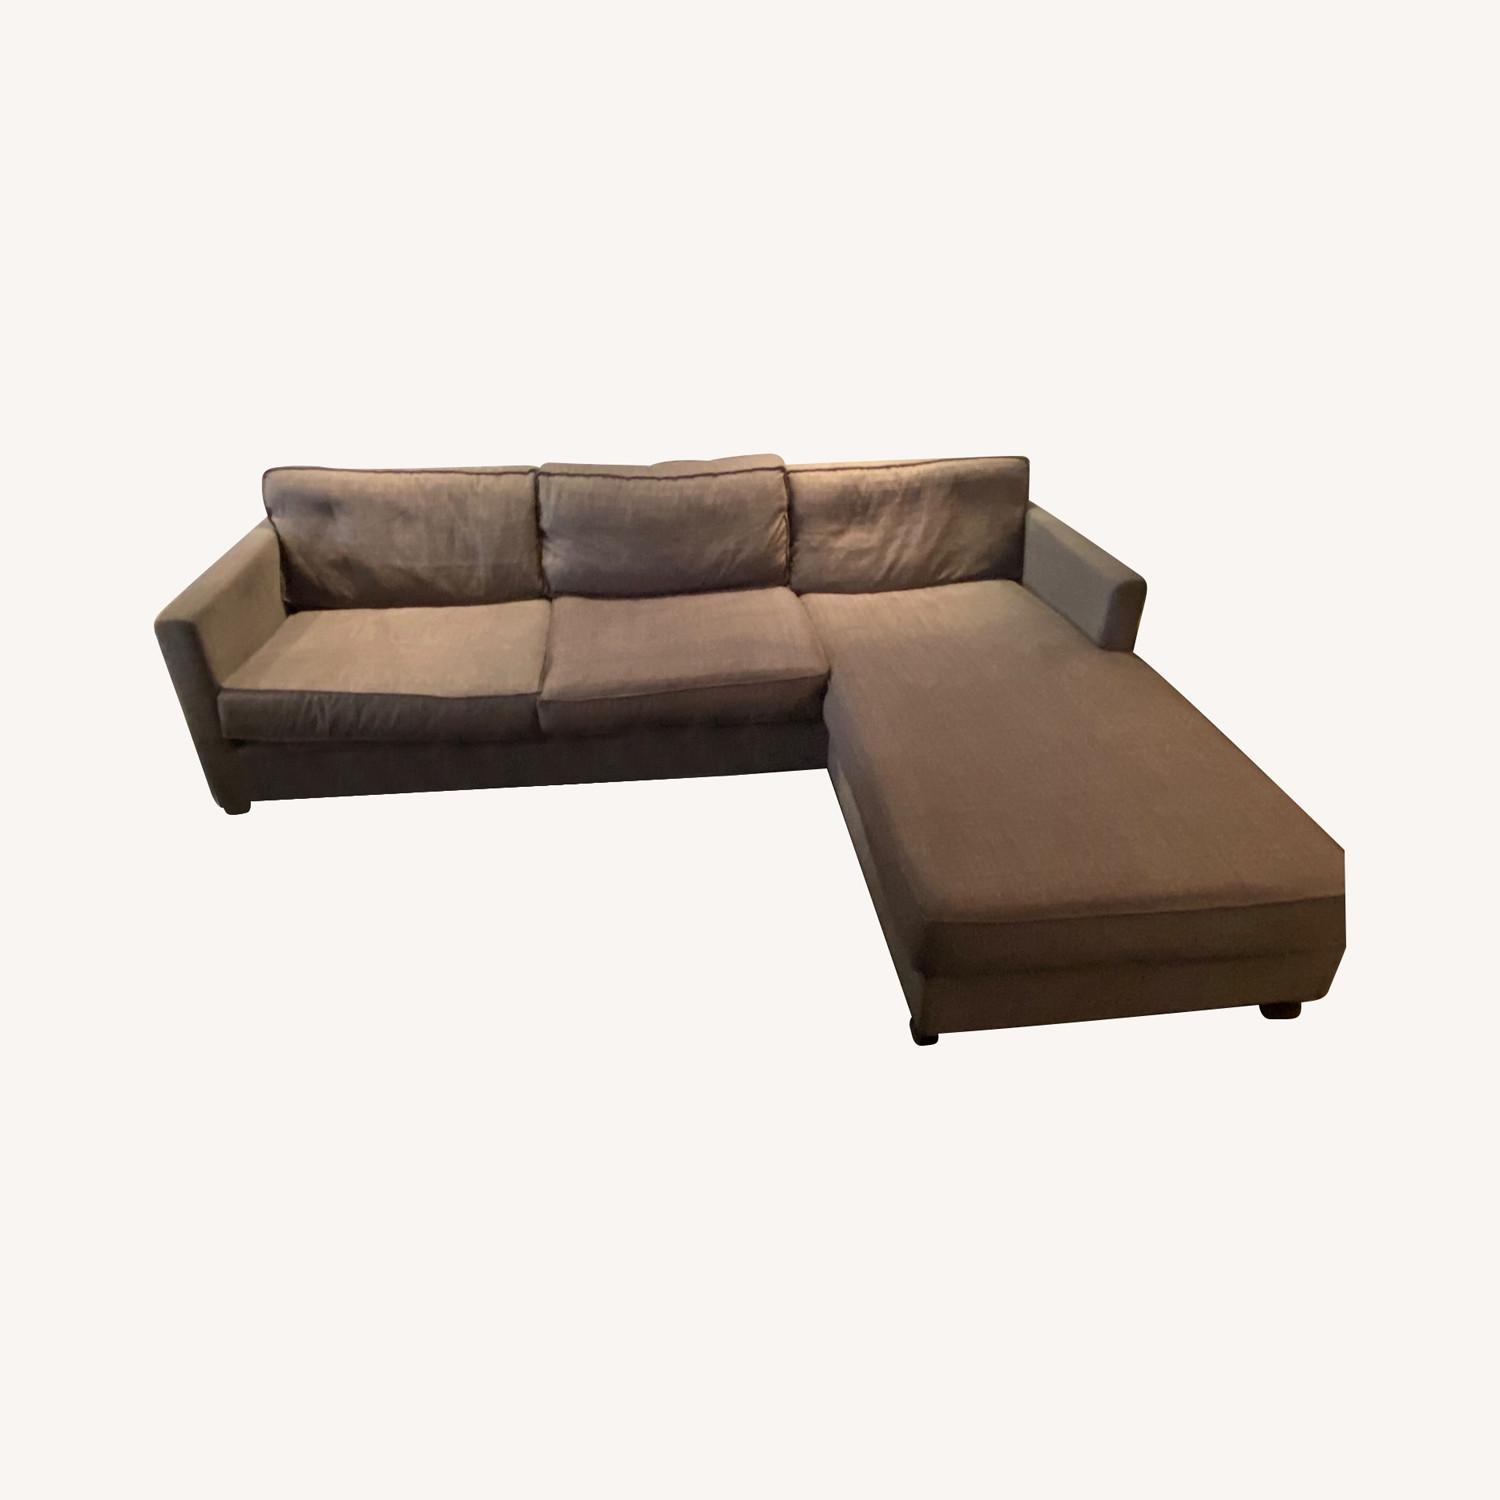 Gus Modern Dark Grey Couch with Chaise lounge - image-5